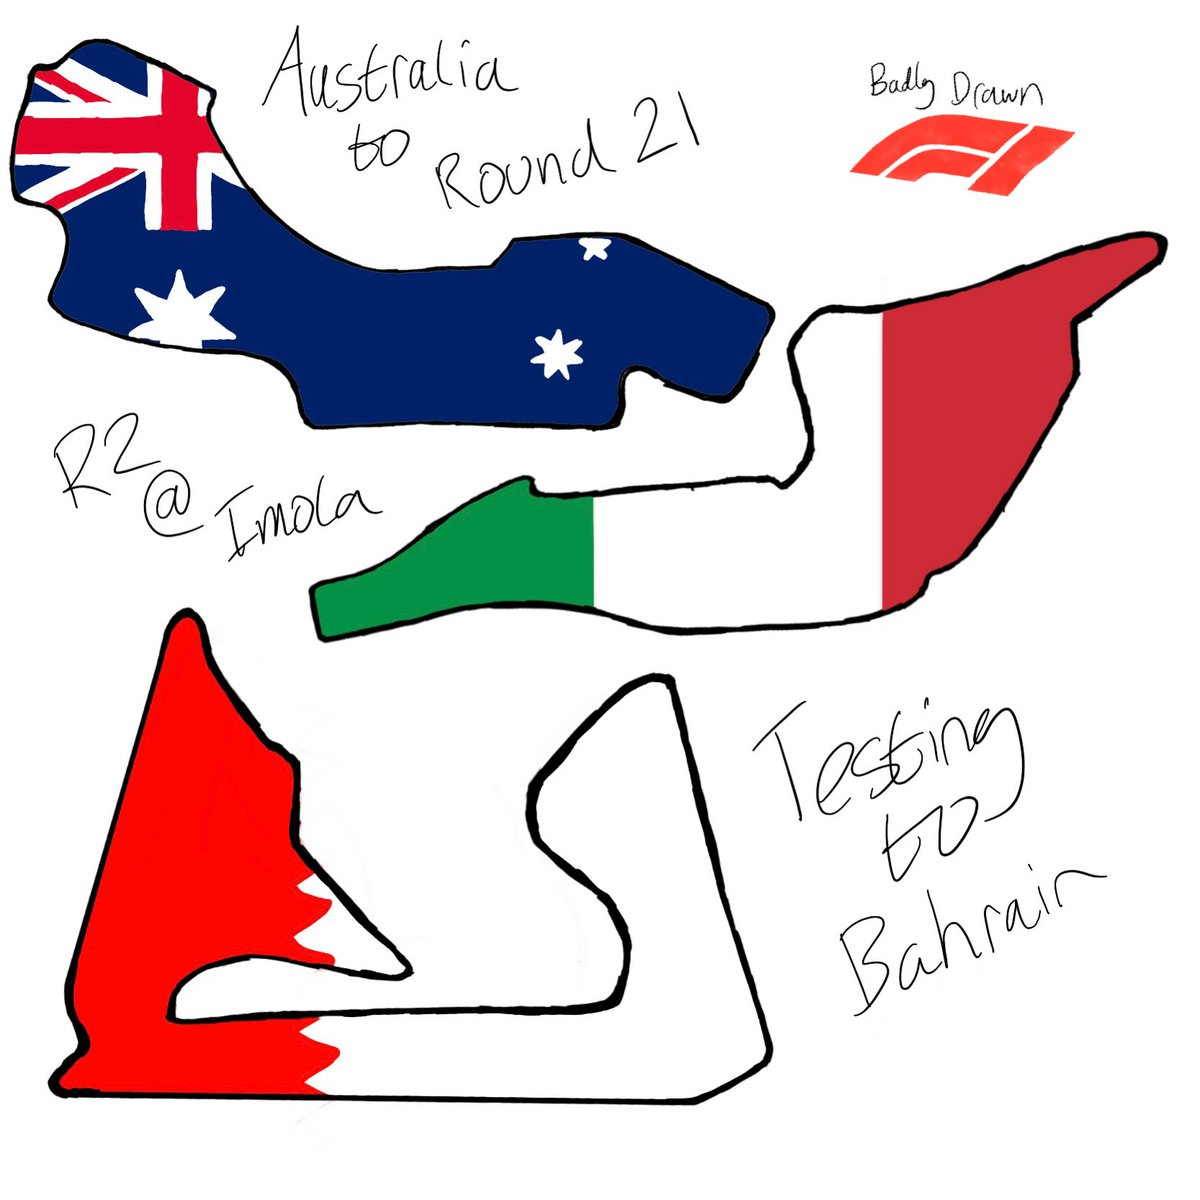 014: Calendar changes announced today. Melbourne Grand Prix moves to round 21 due. Imola Replaces China for round 2 Round 1 and pre-season testing moves to Bahrain  #F1 #Formula1 #formulaone #AusGP #BahrainGP #ImolaGP #ChinaGP #imola #albertpark https://t.co/6EVqCMhmPn